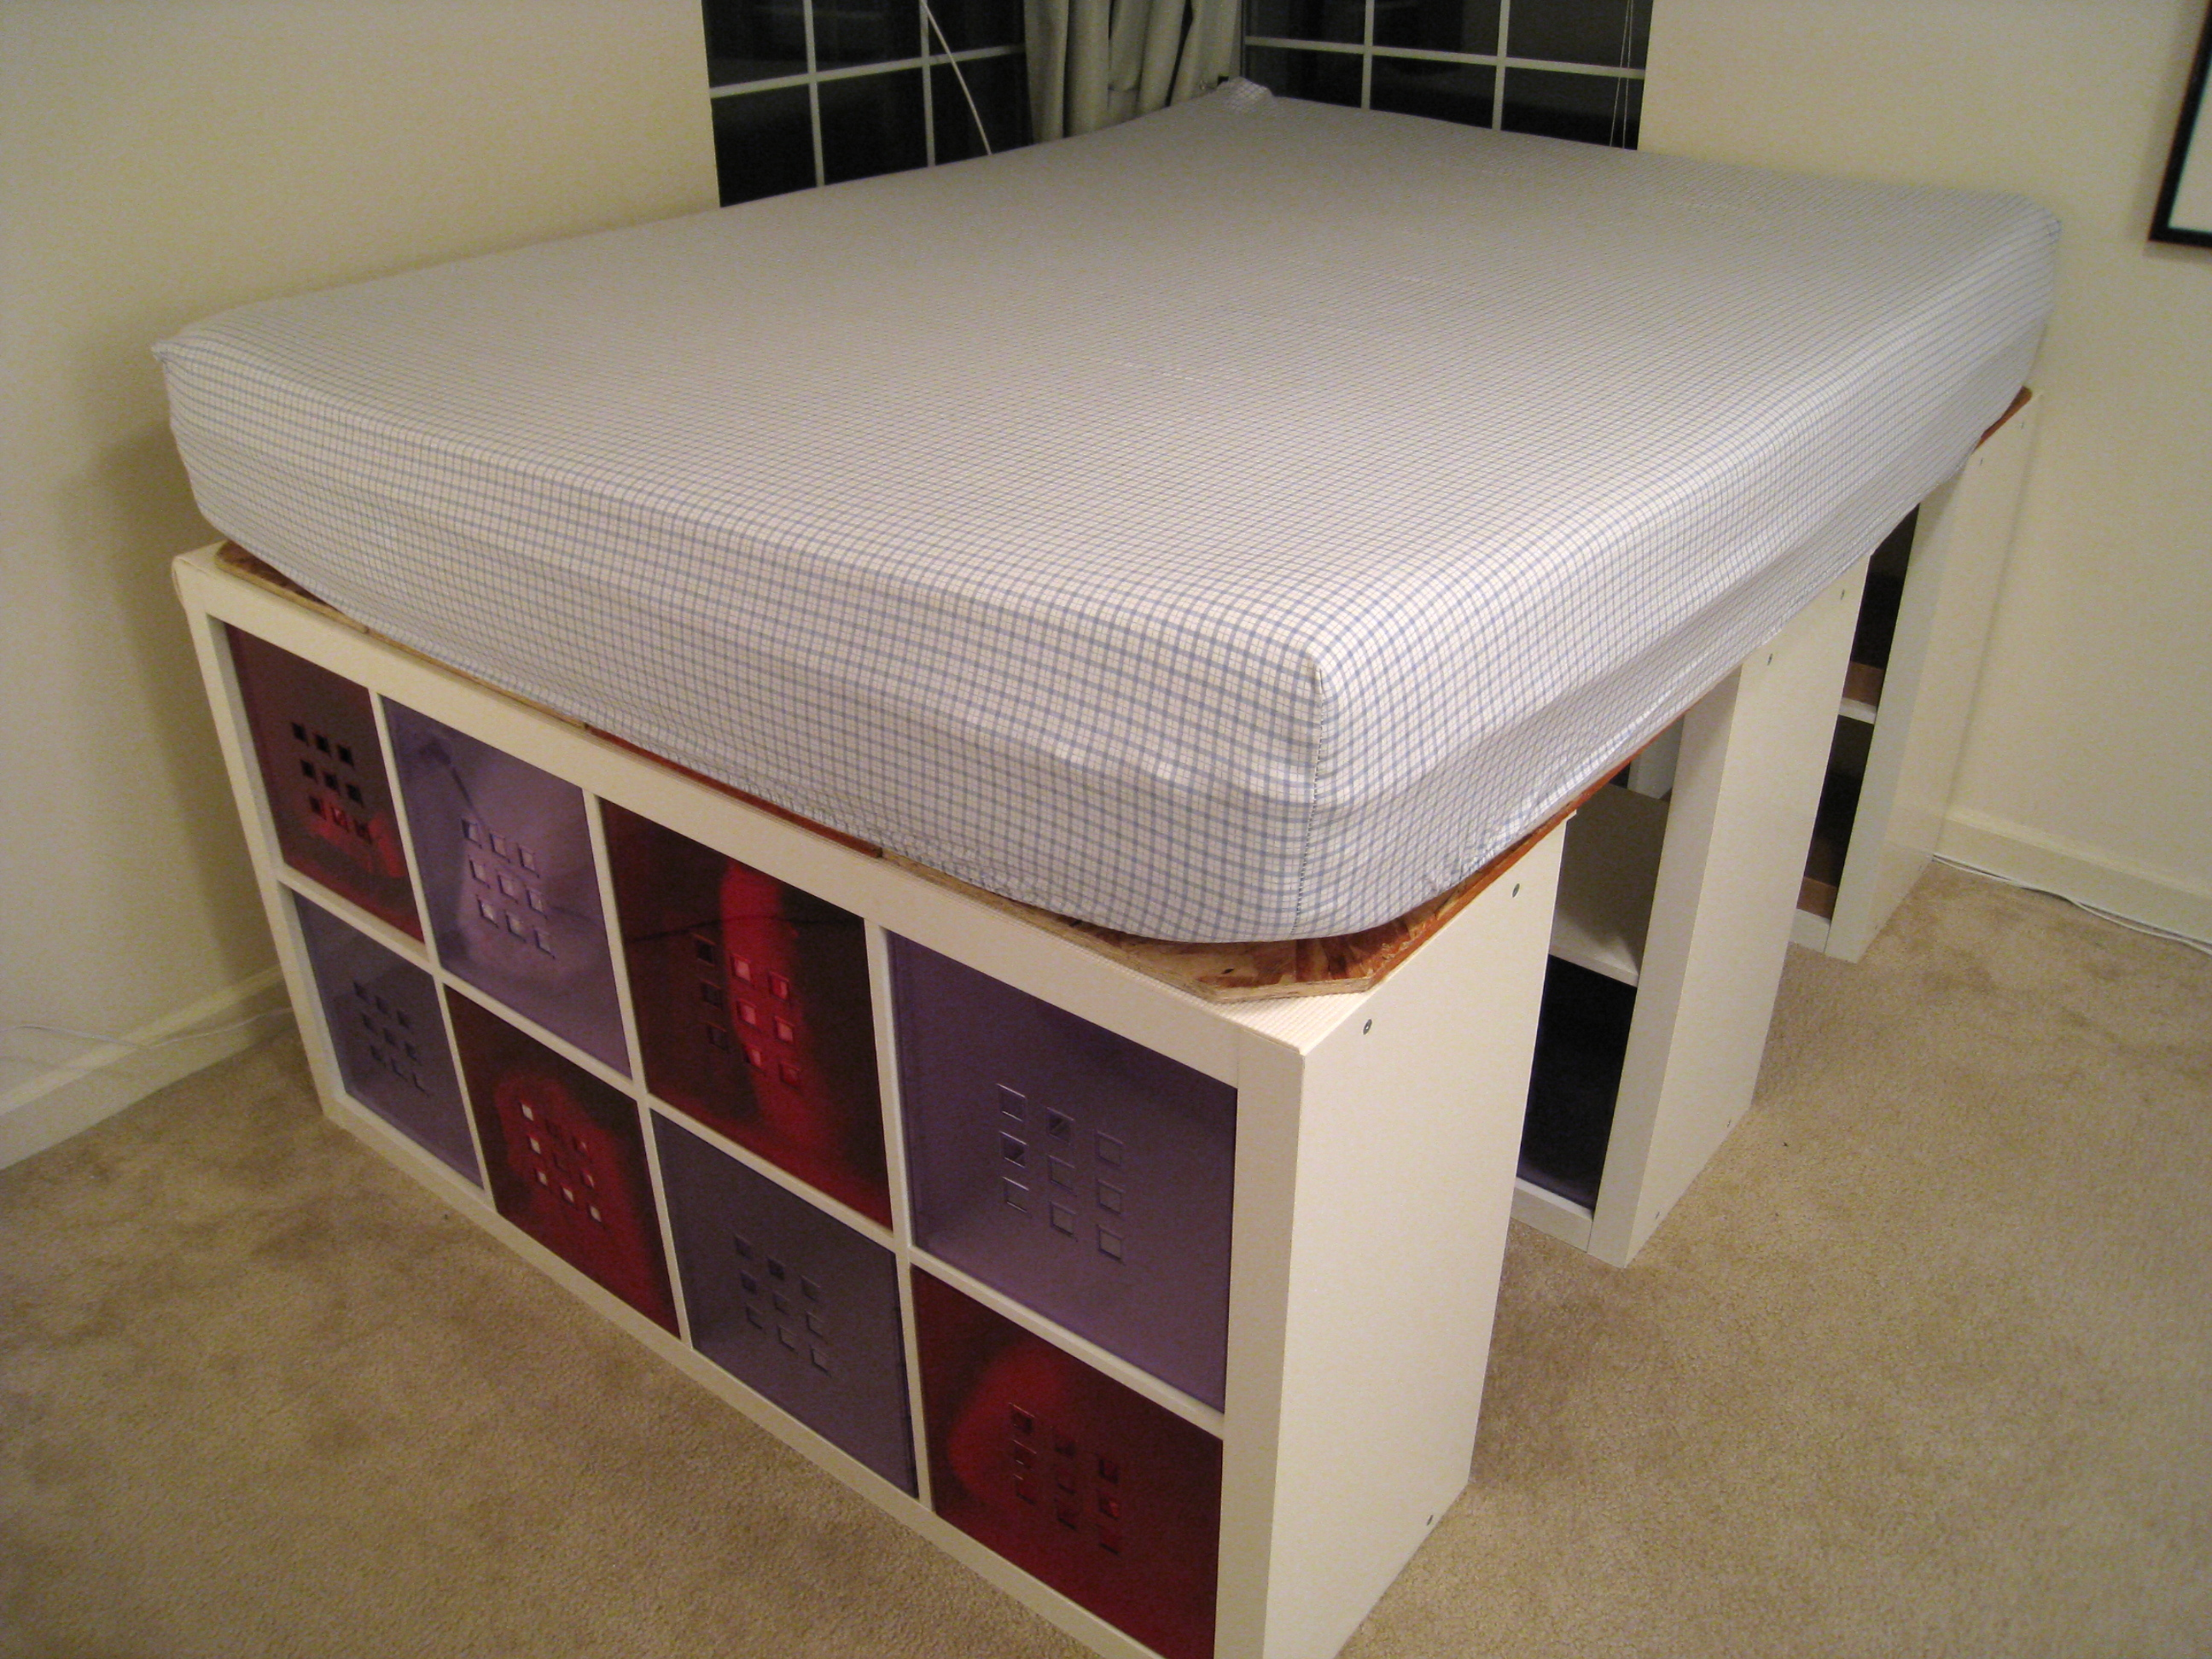 Permalink to diy full size platform bed with storage